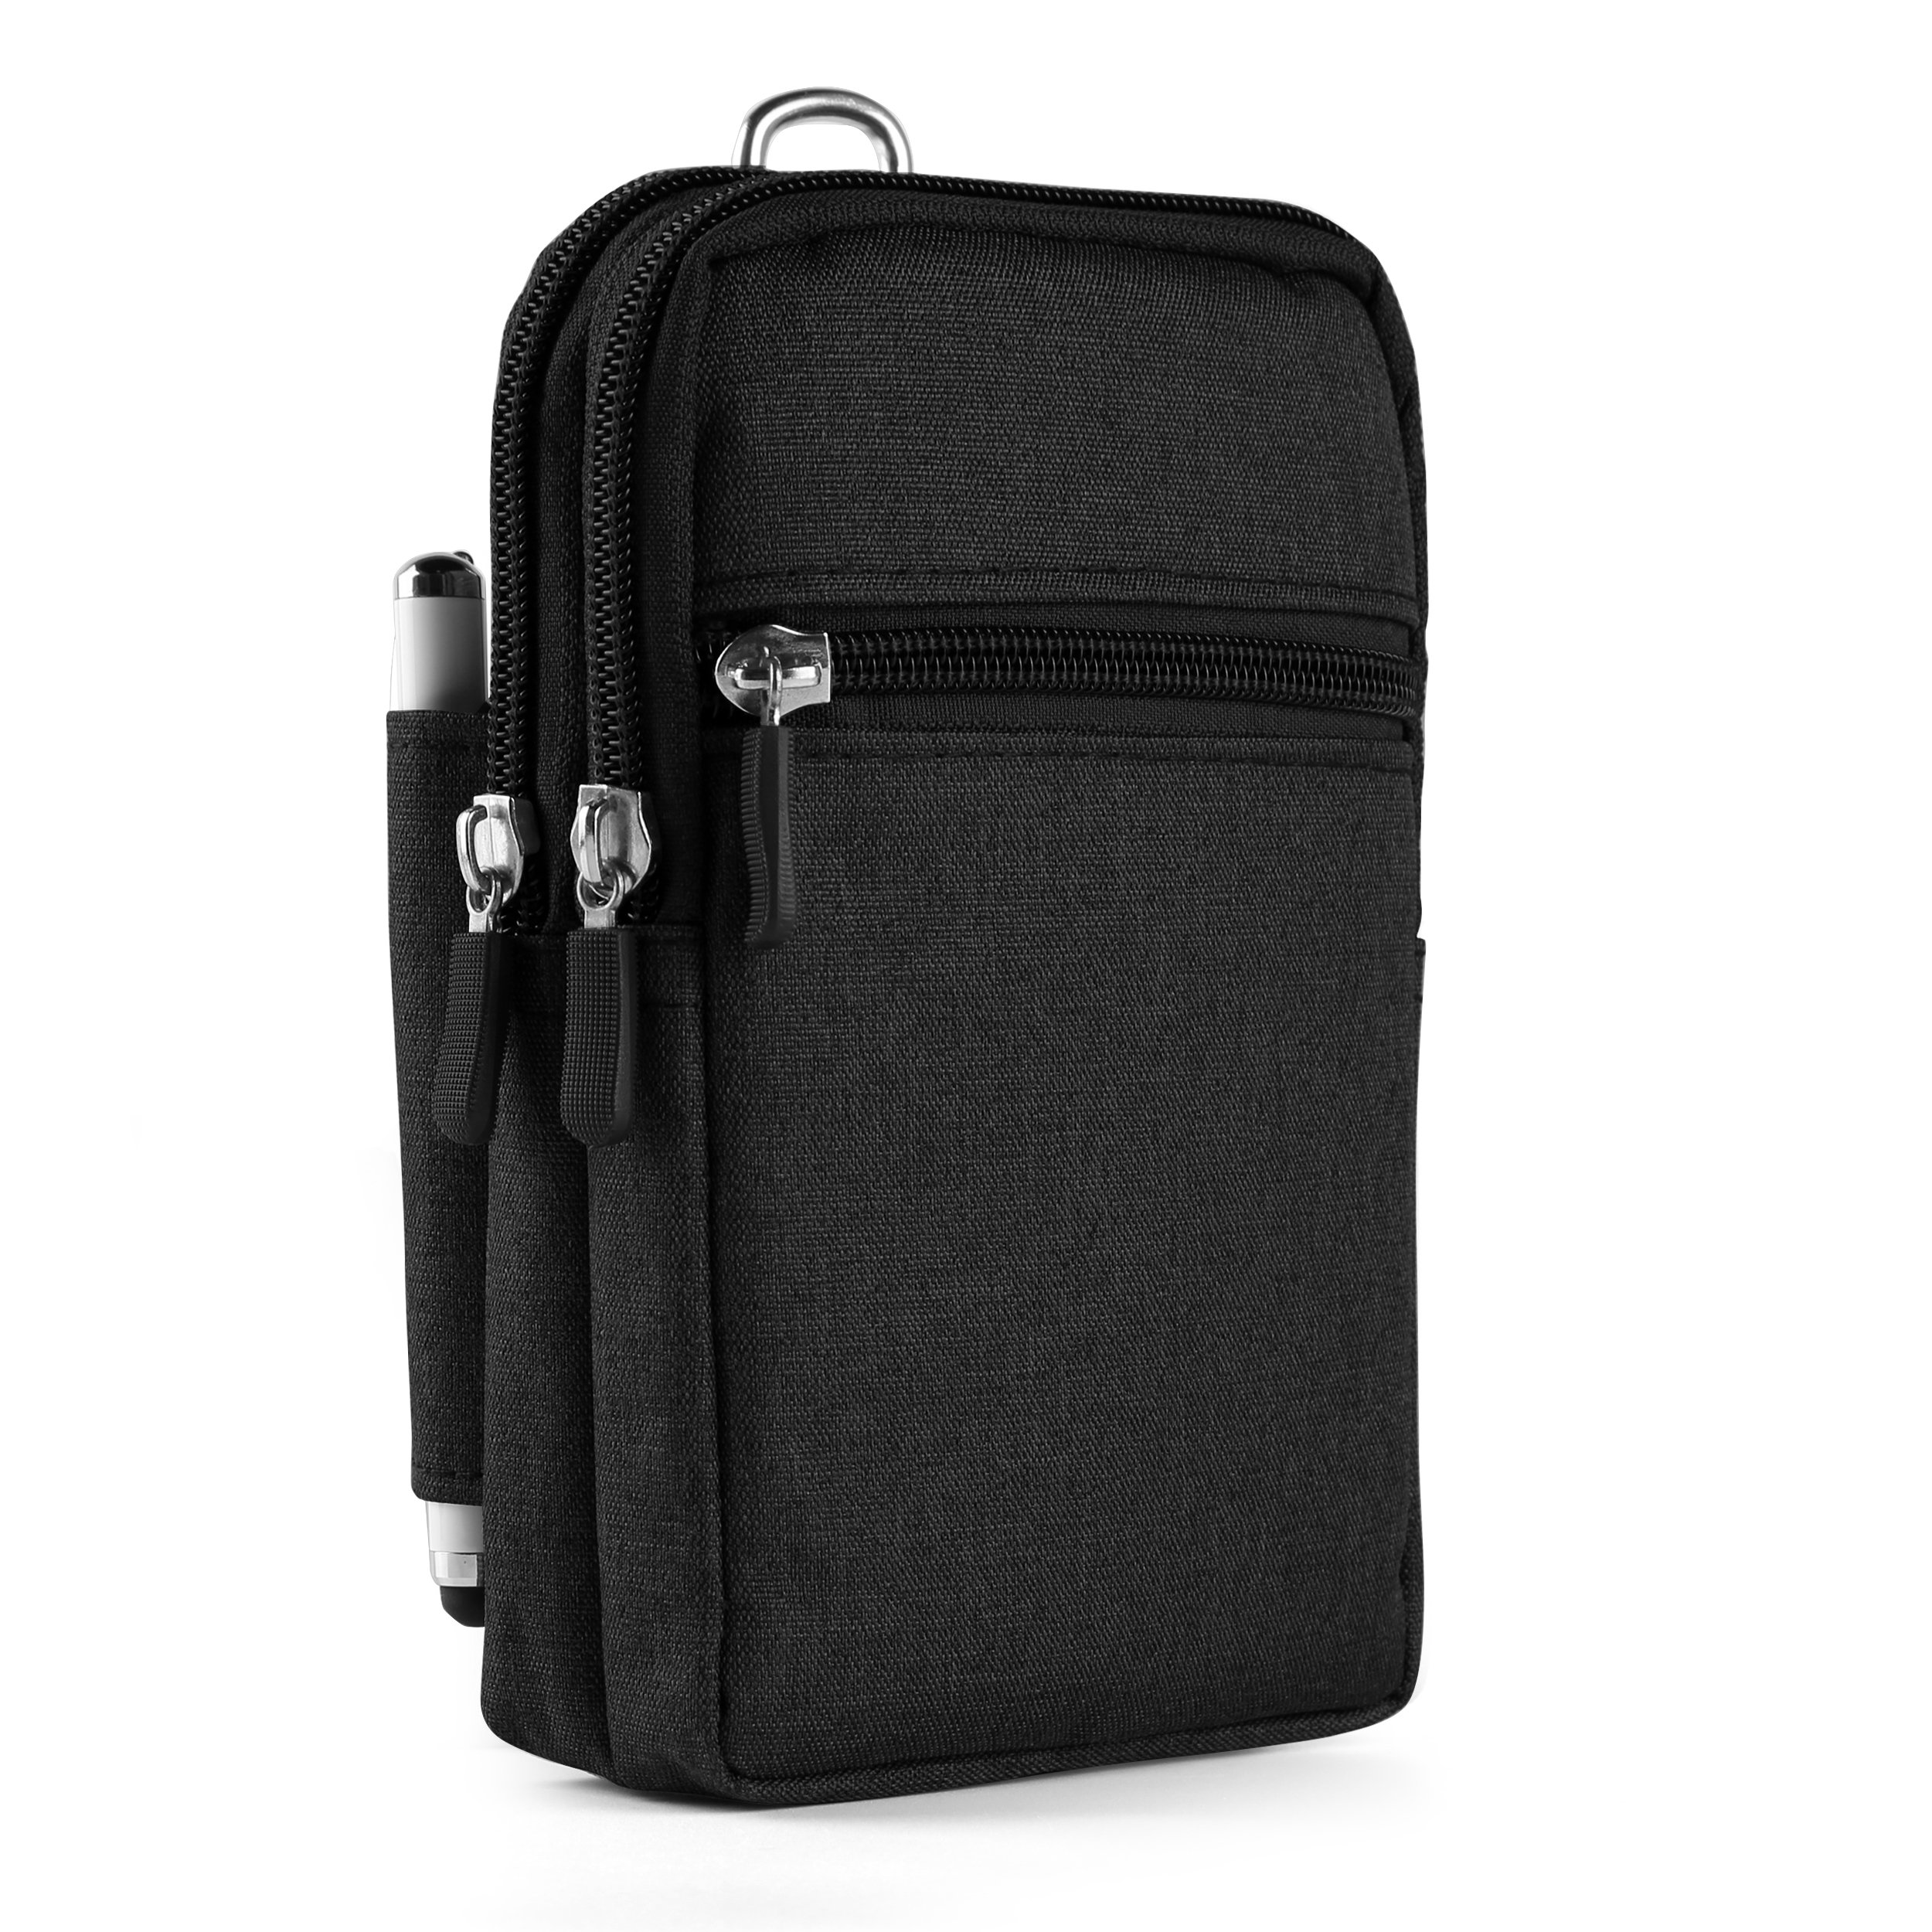 Universal Belt Loop Travel Smartphone Case for LG Stylo/K7/G4/G5/G6/V20/Leon/Phoenix/Optimus/G3